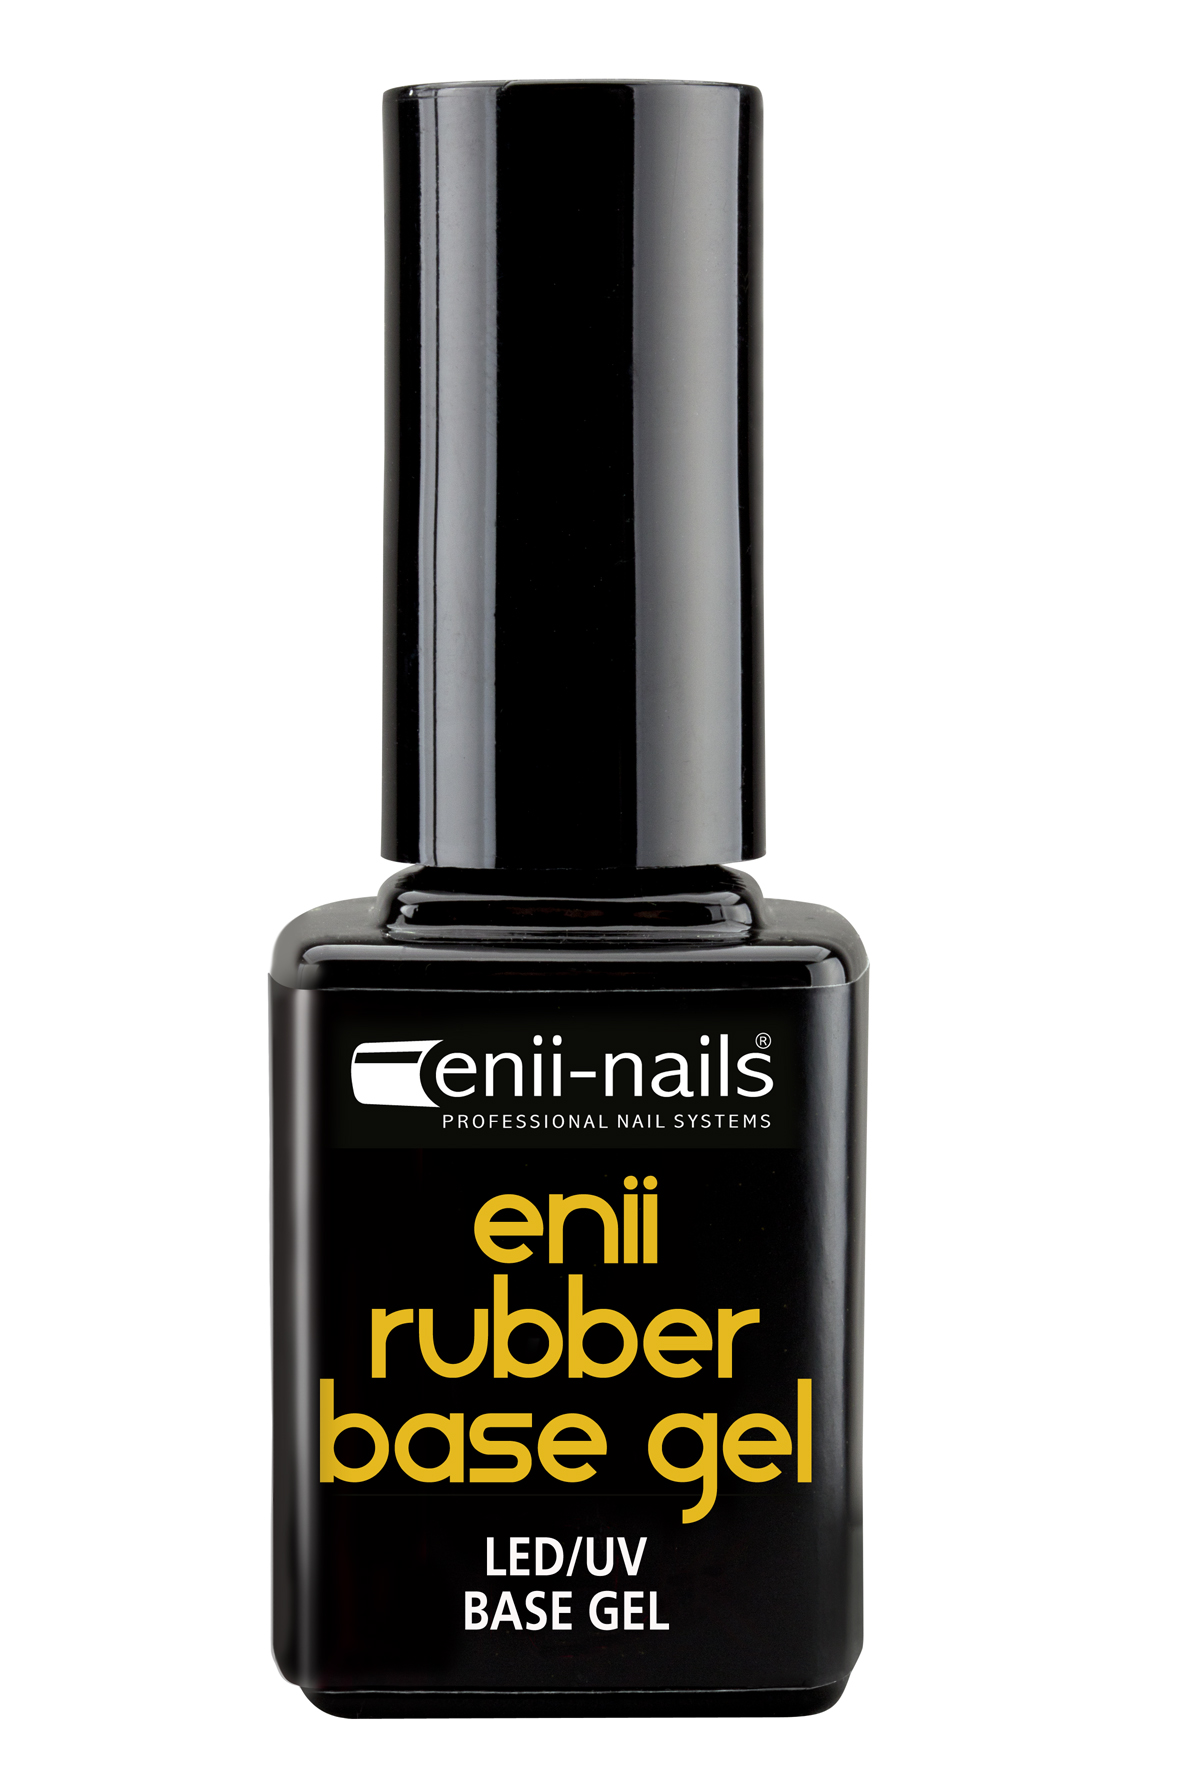 ENII-NAILS ENII RUBBER BASE 11 ml